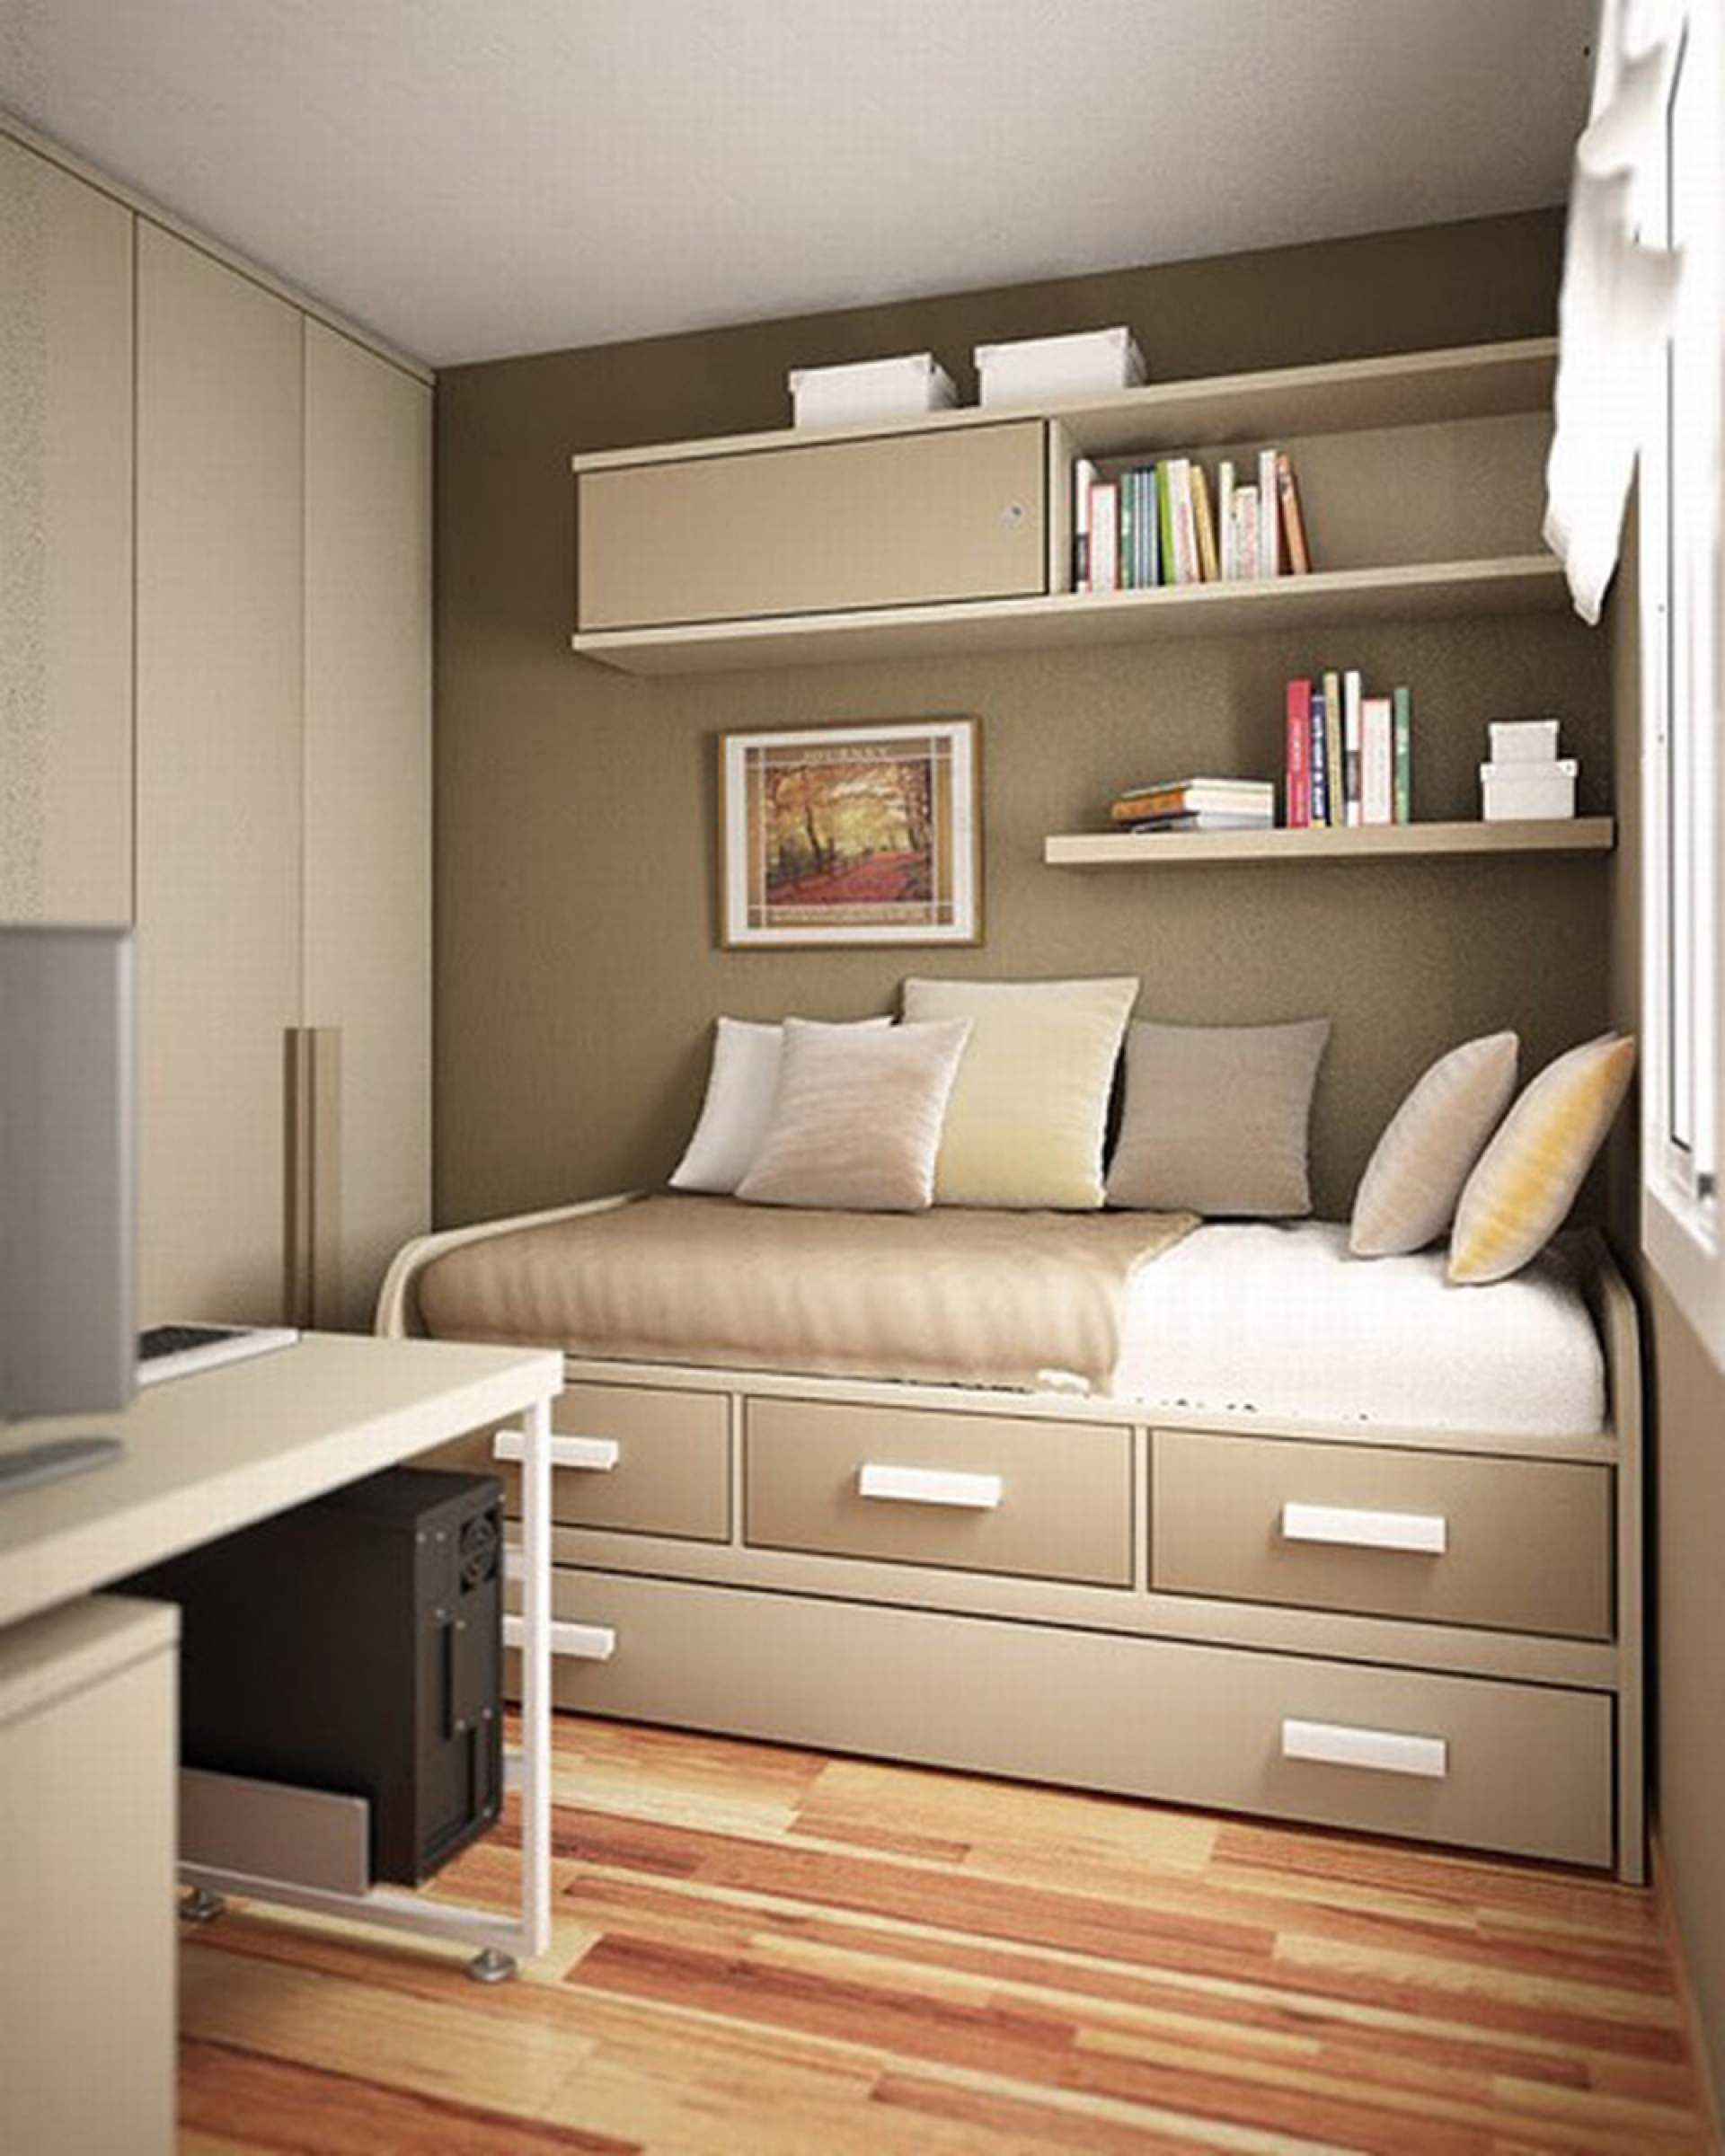 Bedroom Ideas Natural Blue And Brown Houzz Small